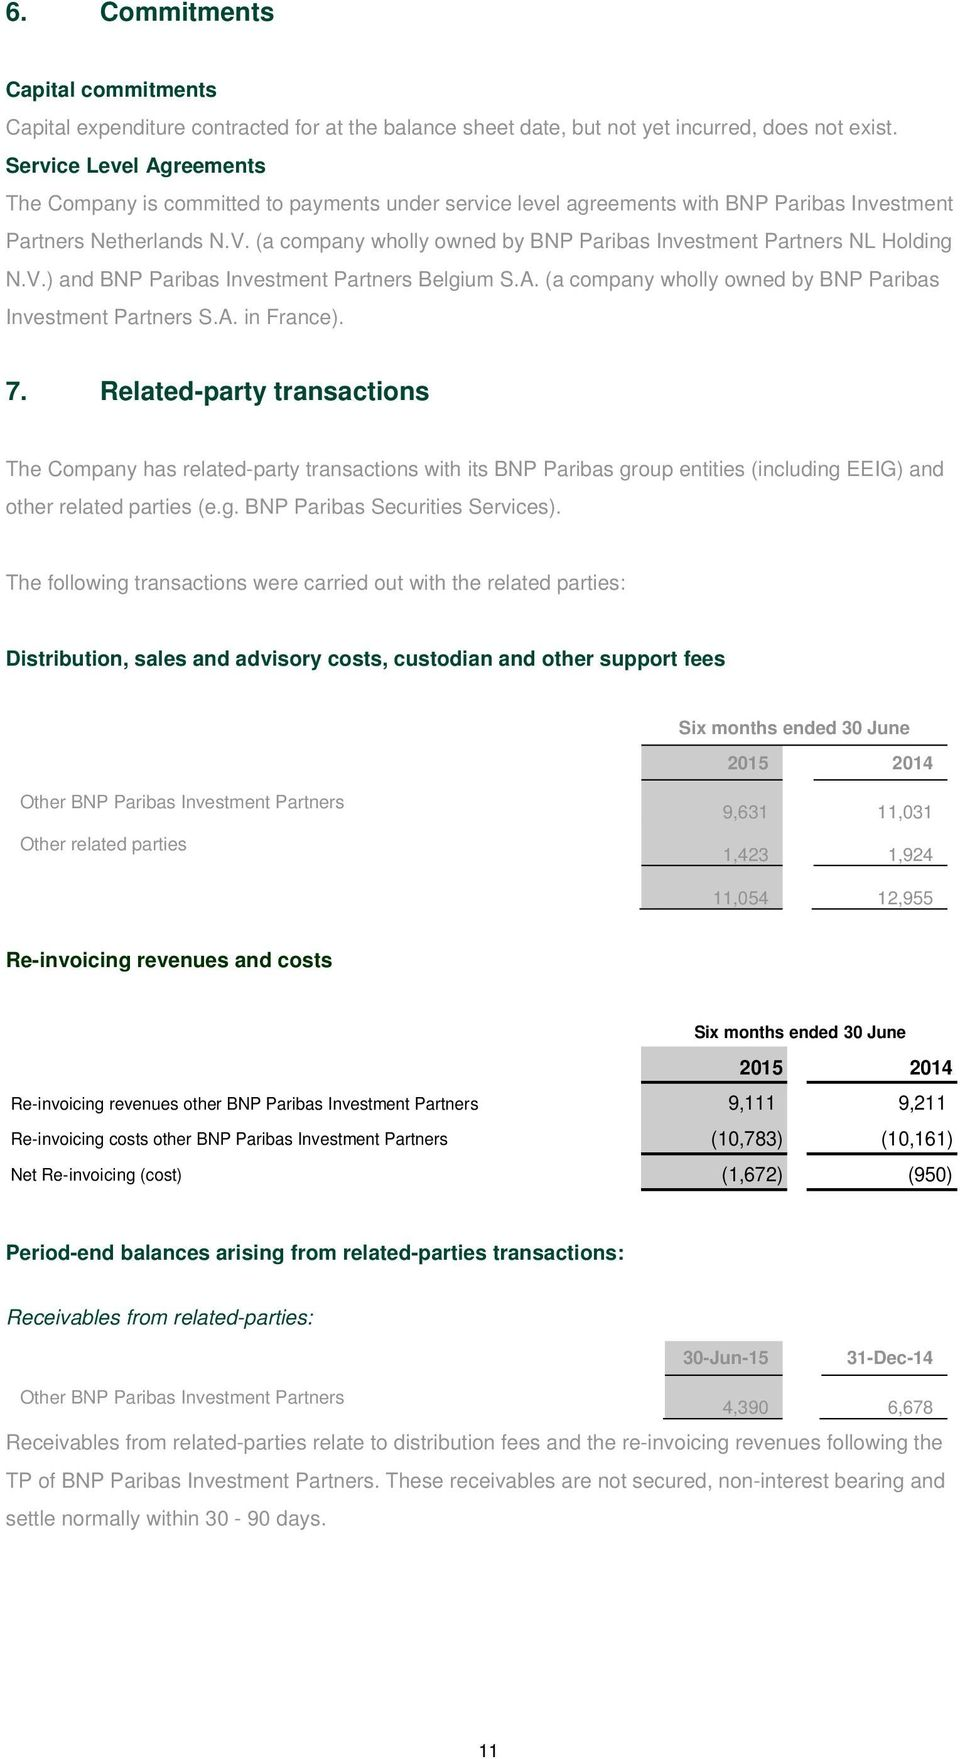 (a company wholly owned by BNP Paribas Investment Partners NL Holding N.V.) and BNP Paribas Investment Partners Belgium S.A. (a company wholly owned by BNP Paribas Investment Partners S.A. in France).